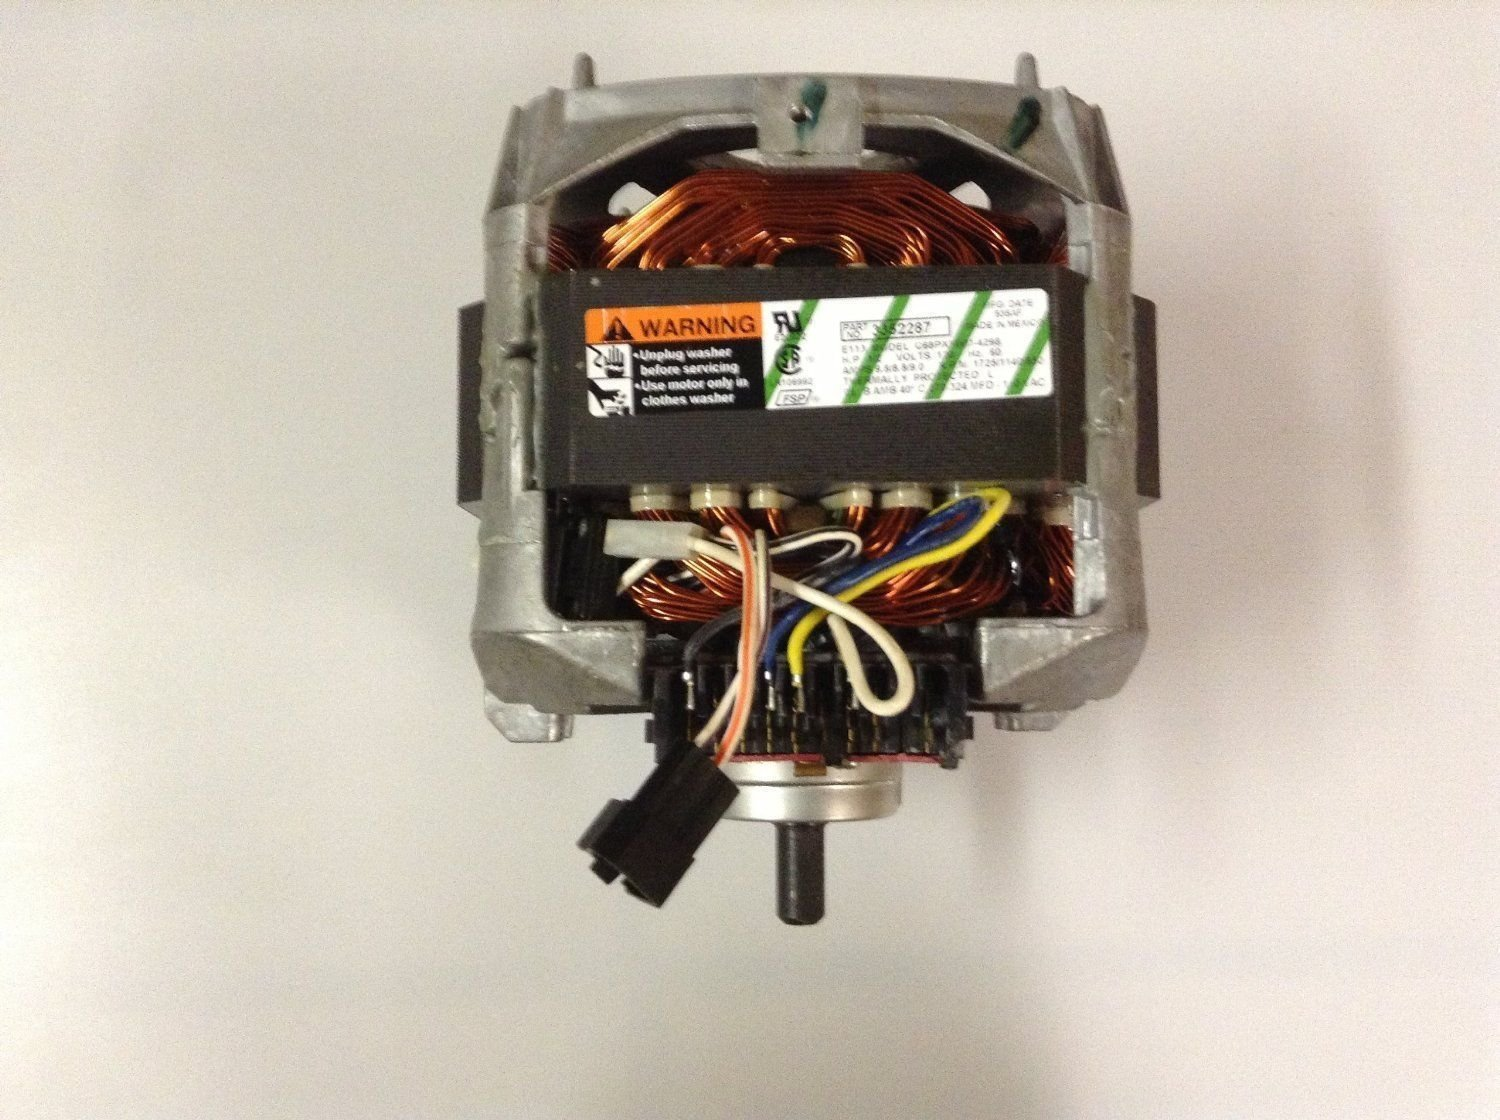 Amazon.com: Replacement Washing Machine Motor for Whirlpool, Sears,  Kenmore, Amana Refrigerators 3352287: Home Improvement